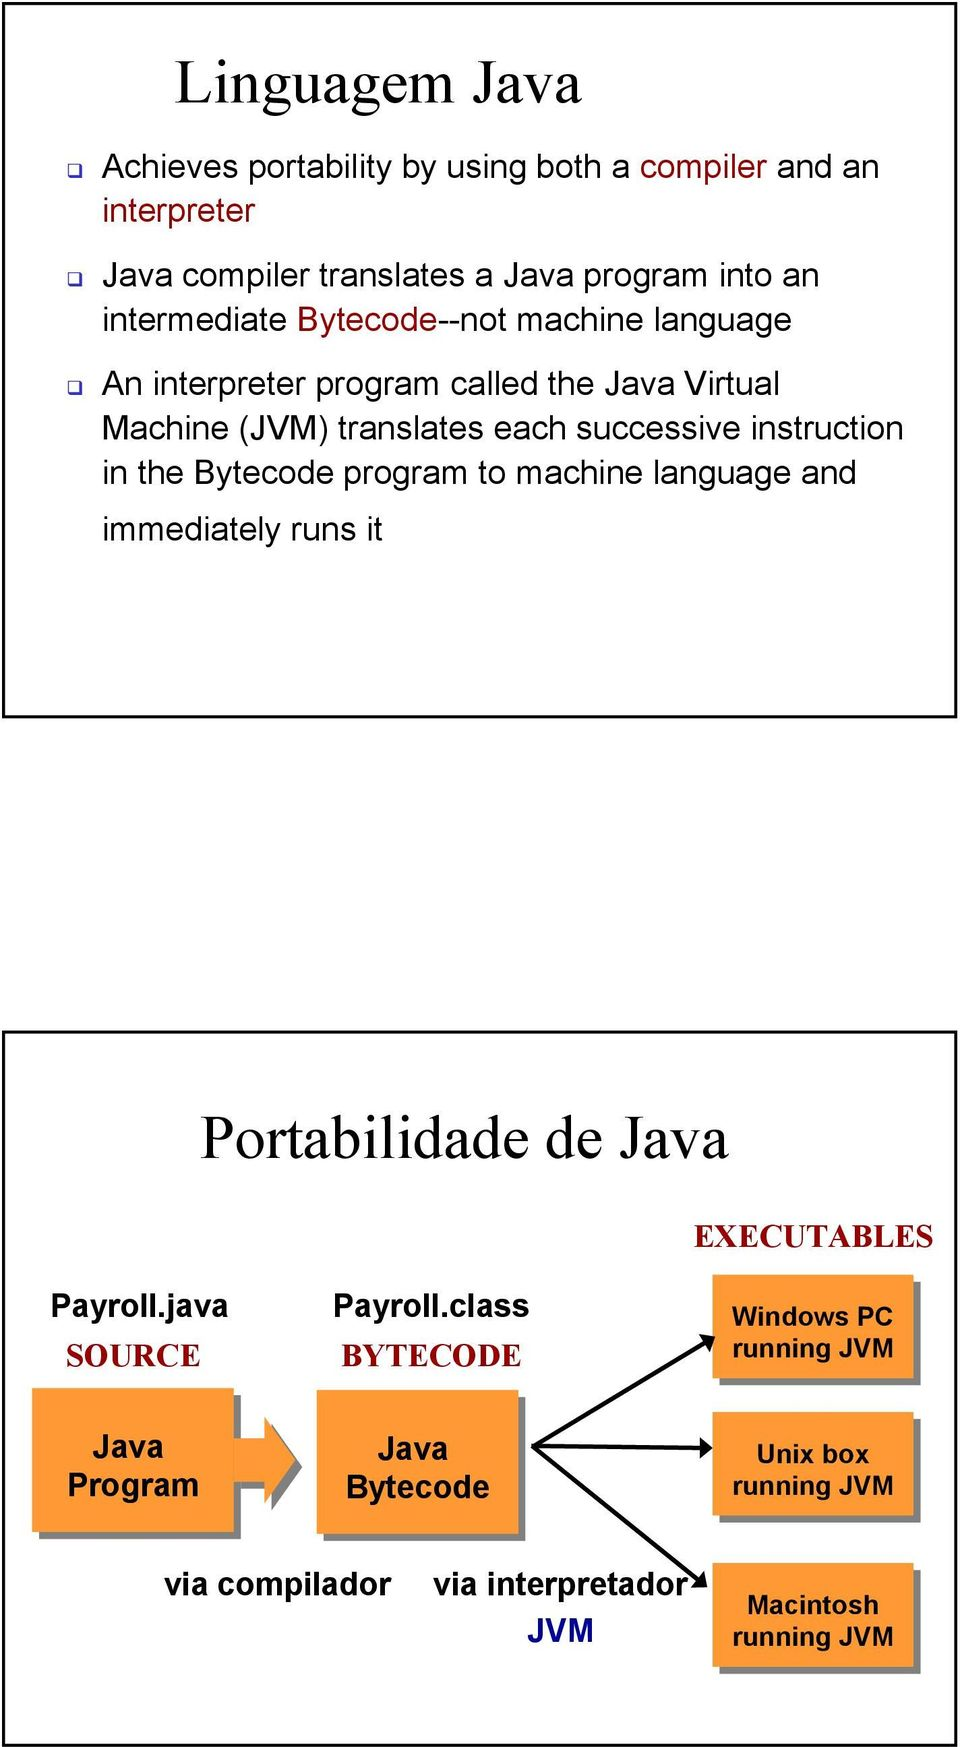 instruction in the Bytecode program to machine language and immediately runs it Portabilidade de Java EXECUTABLES Payroll.